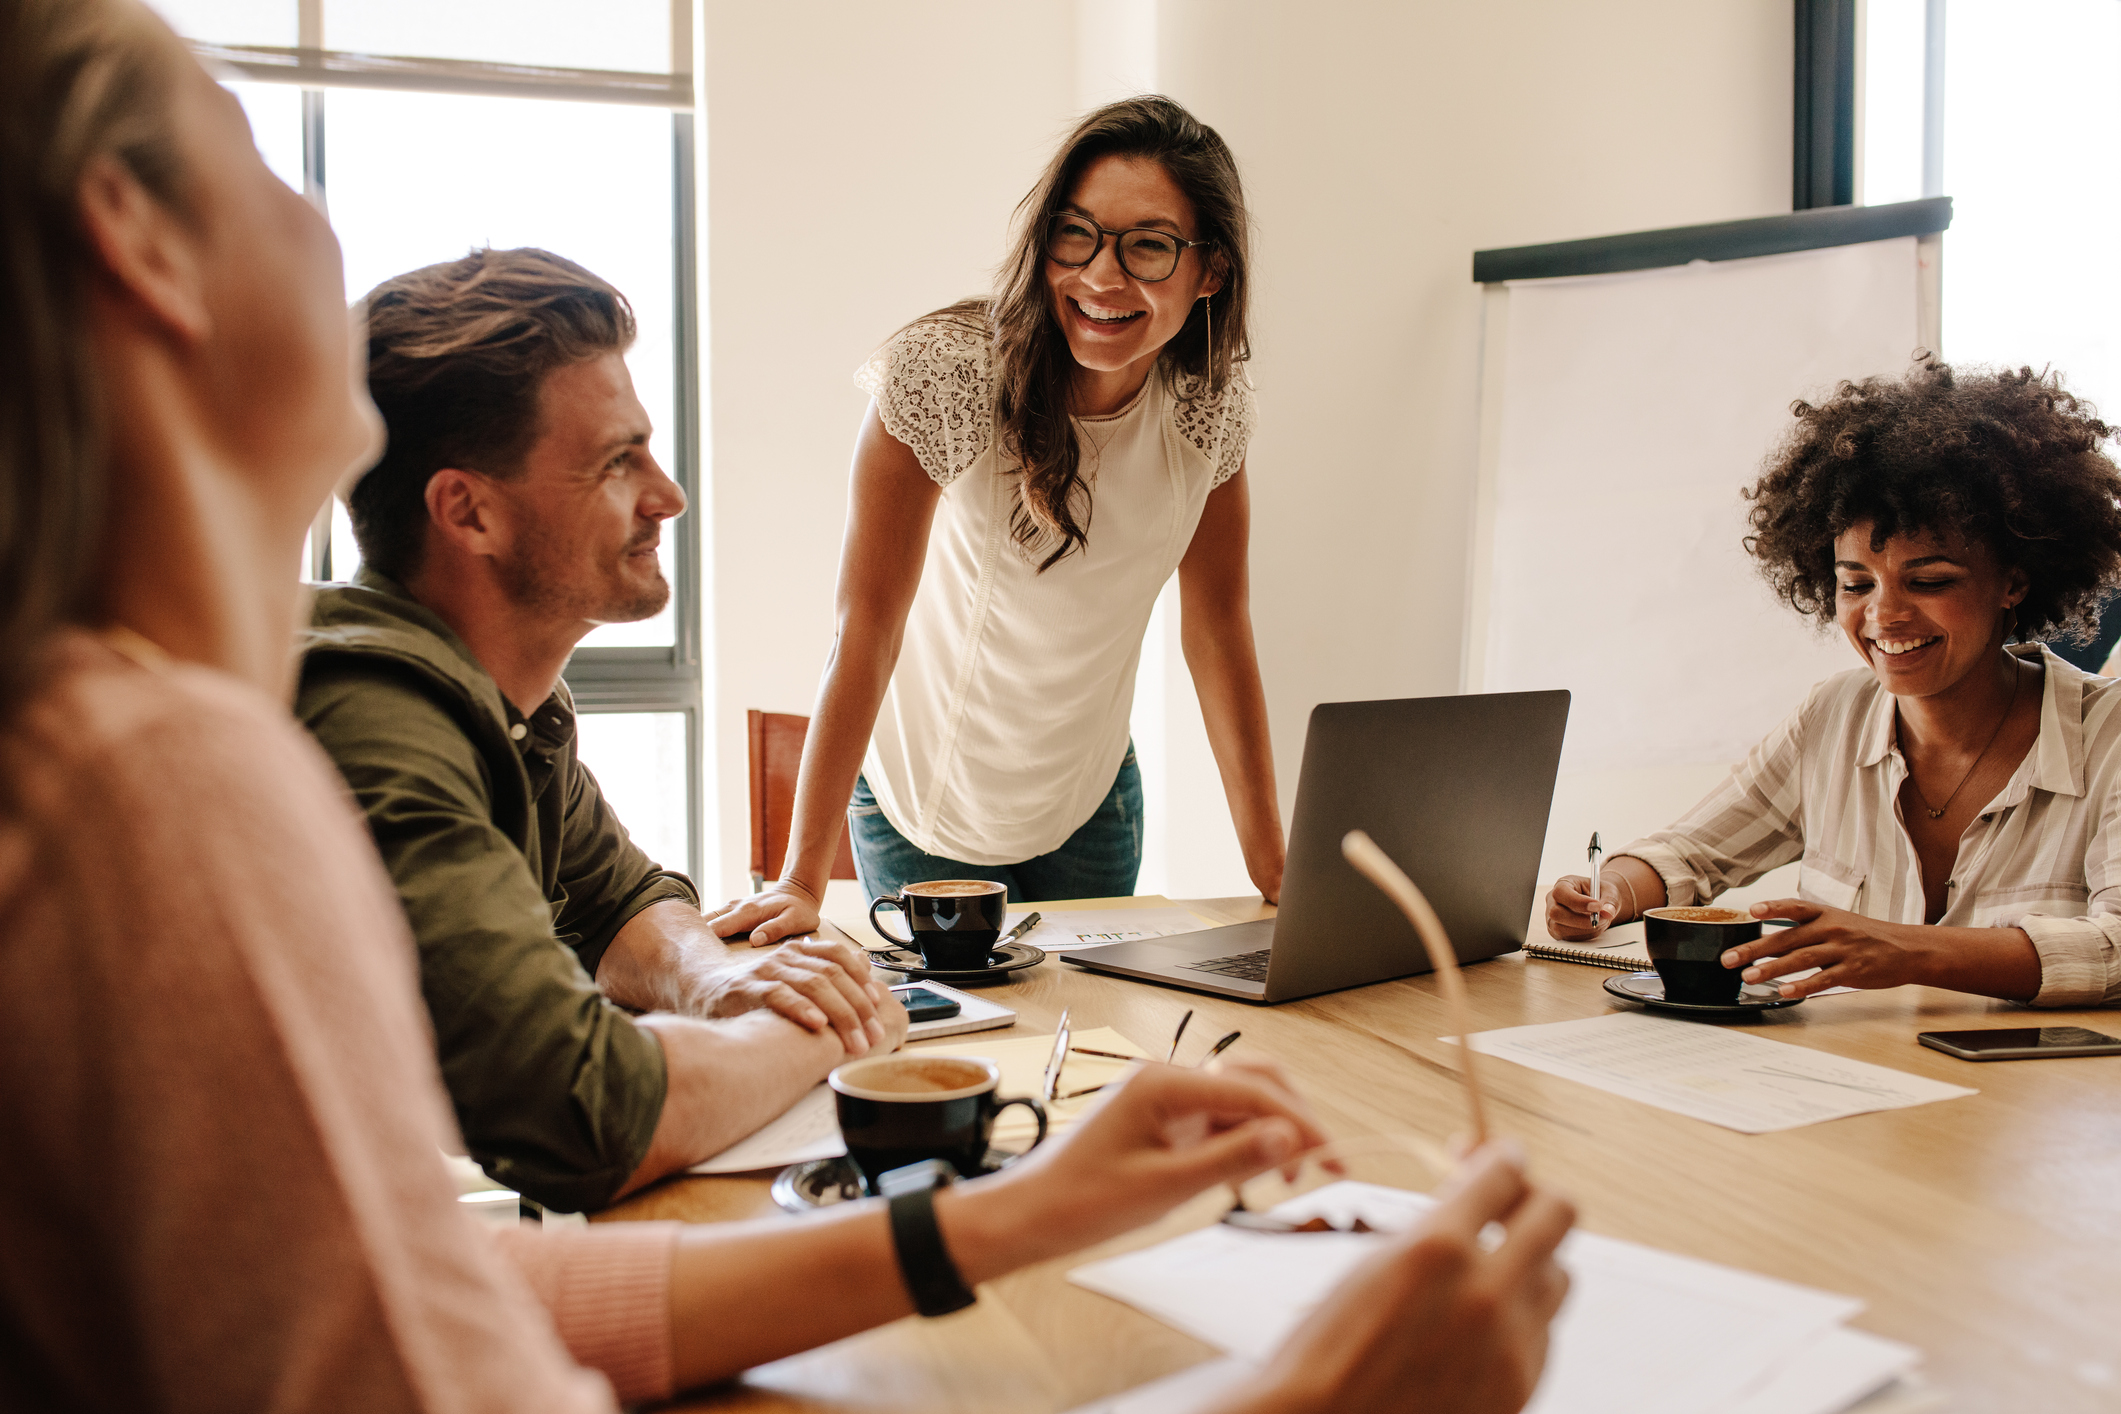 Team Building Exercises to Build Your Small Business